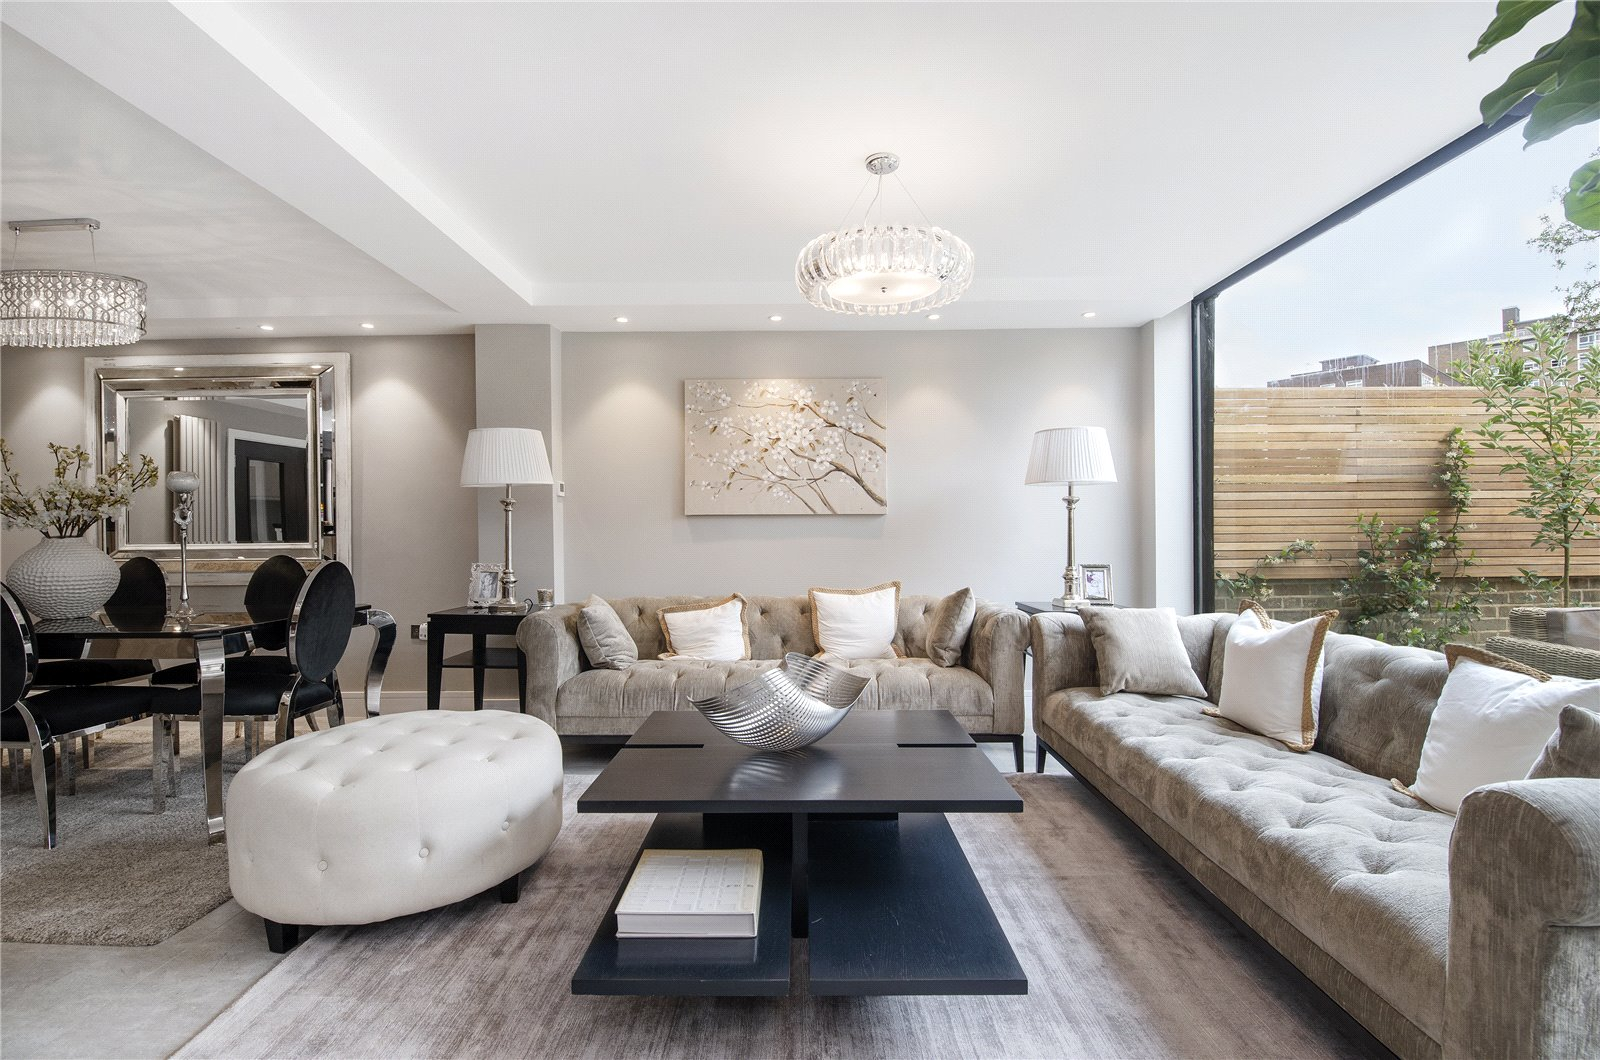 Other for Rent at Court Close, St. Johns Wood Park, London, NW8 Court Close, St. Johns Wood Park, London, NW8